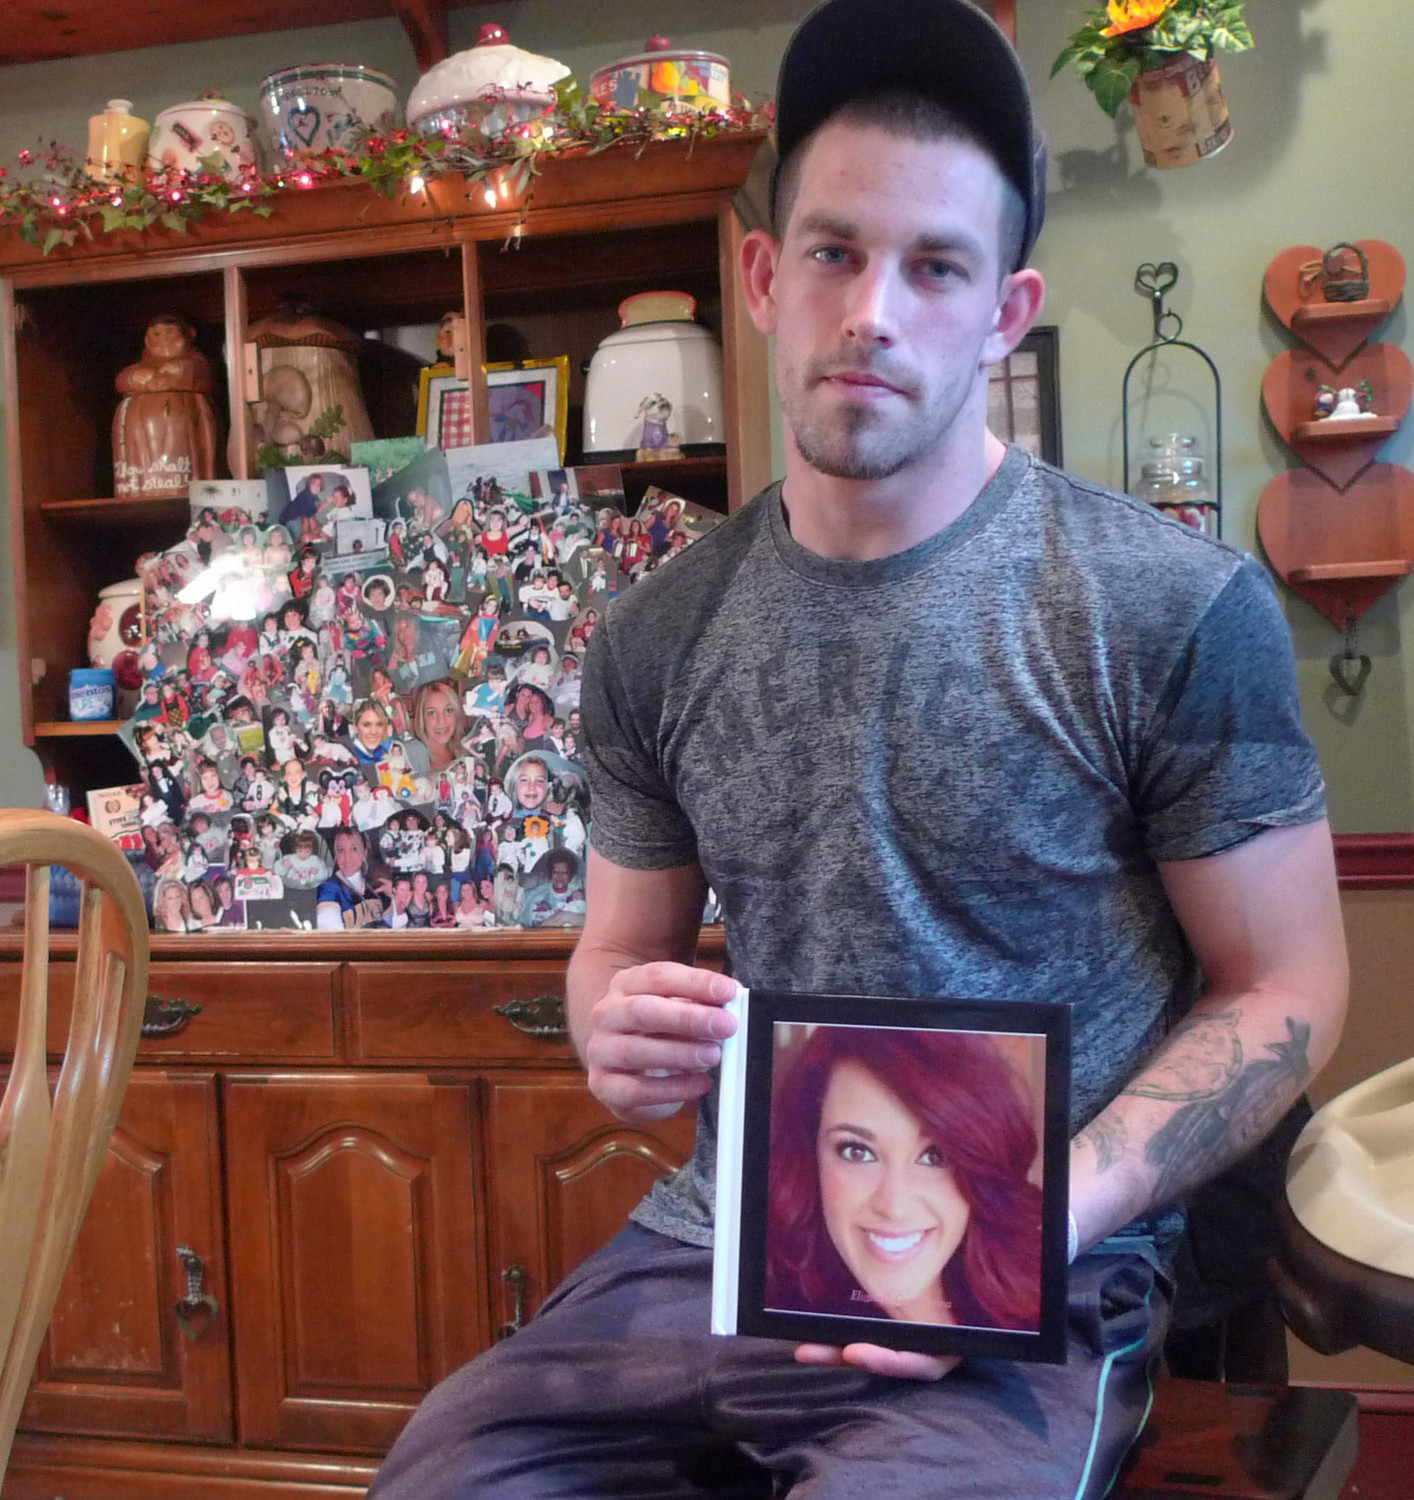 Kyle Cox holds a photo of his fiancee, Elizabeth Loranzo, who died of an accidental overdose from heroin laced with fentanyl on March 19, 2017.